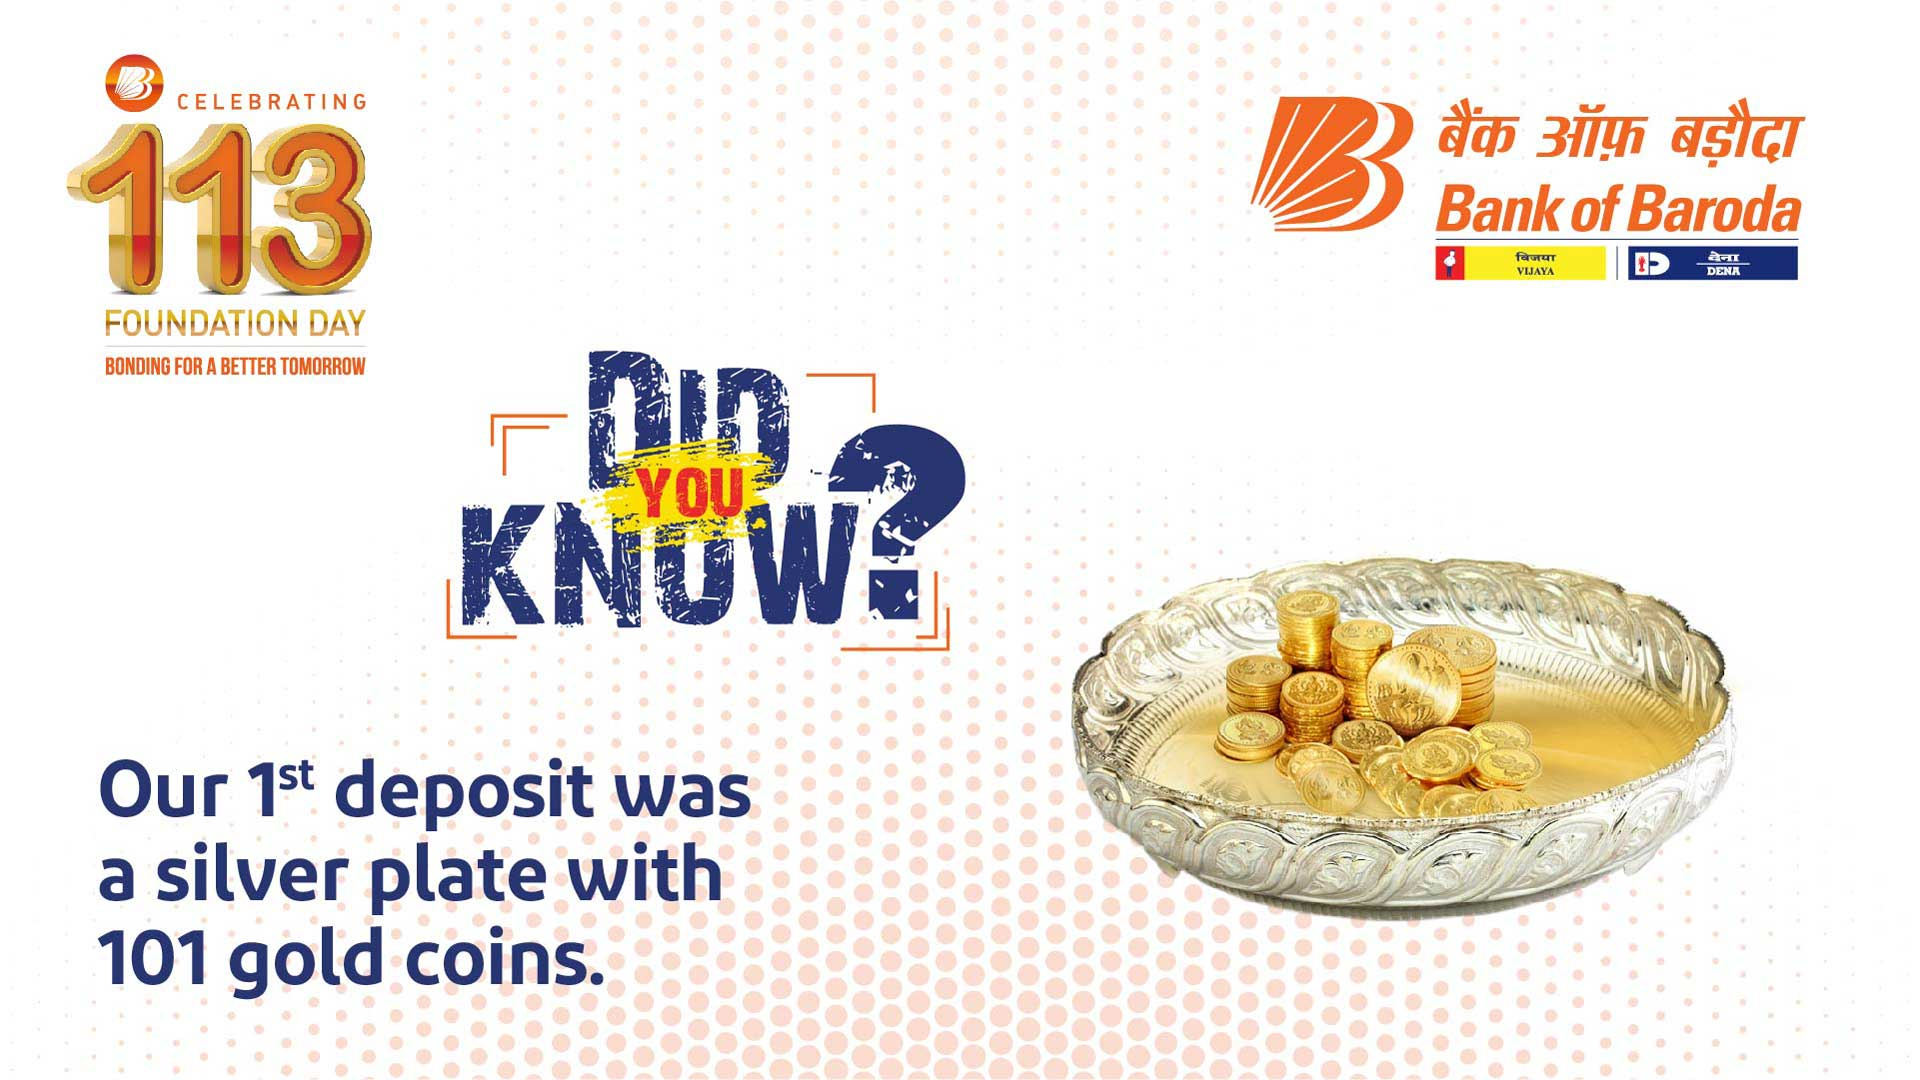 Did You Know? - Our First Deposit was a Silver Plate with 101 Gold Coins